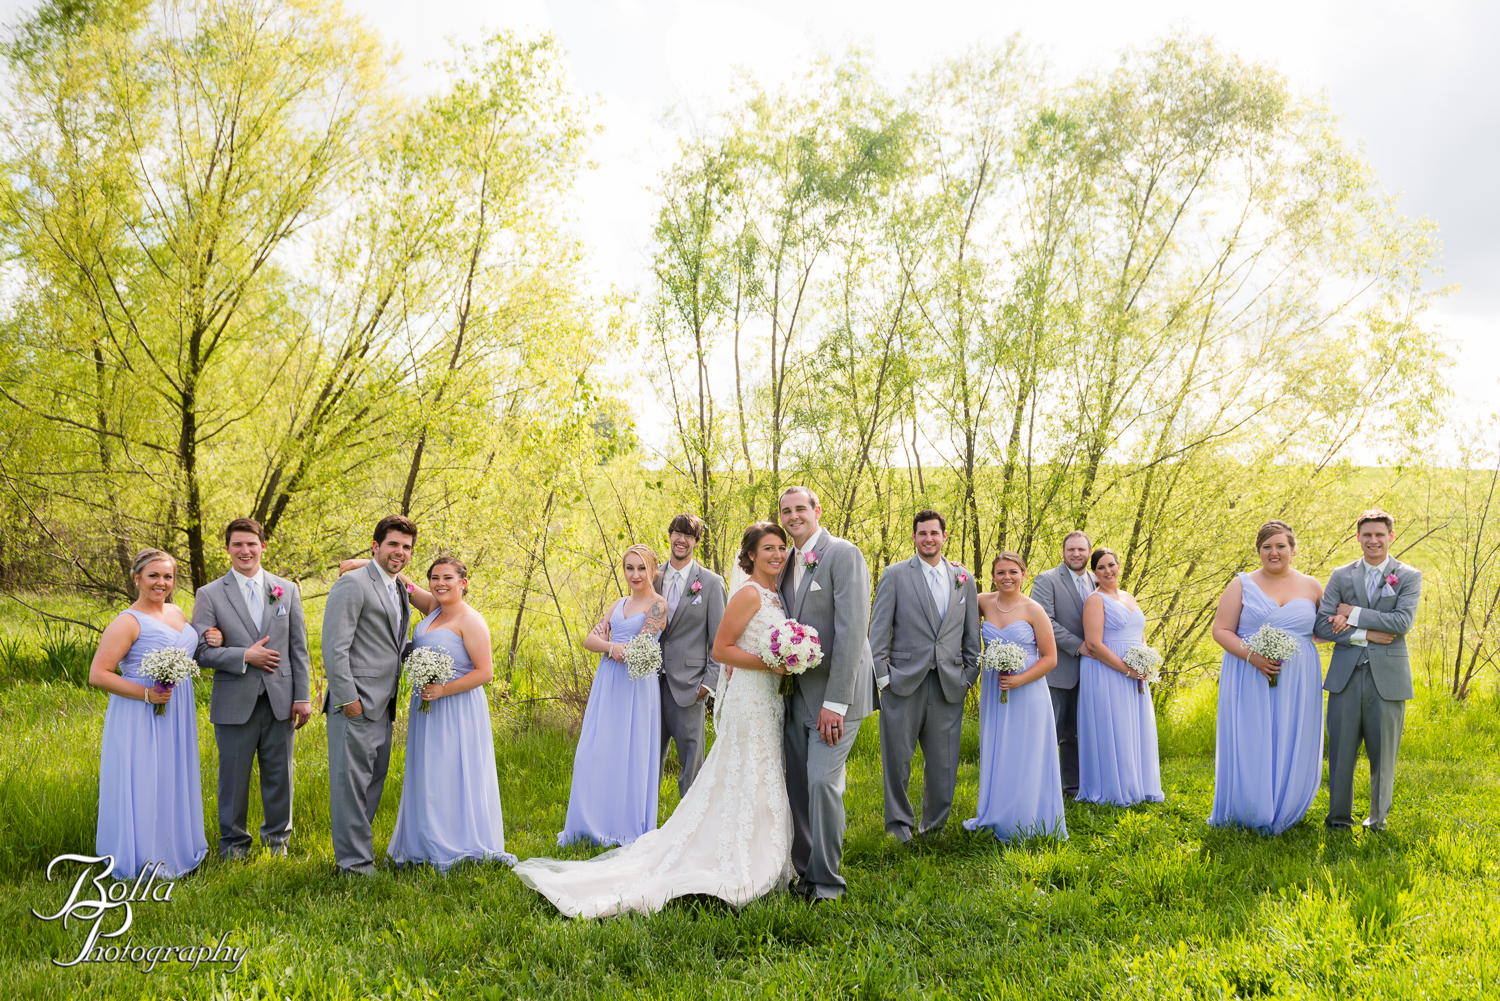 Bolla_Photography_St_Louis_wedding_photographer_Villa_Marie_Winery-0275.jpg